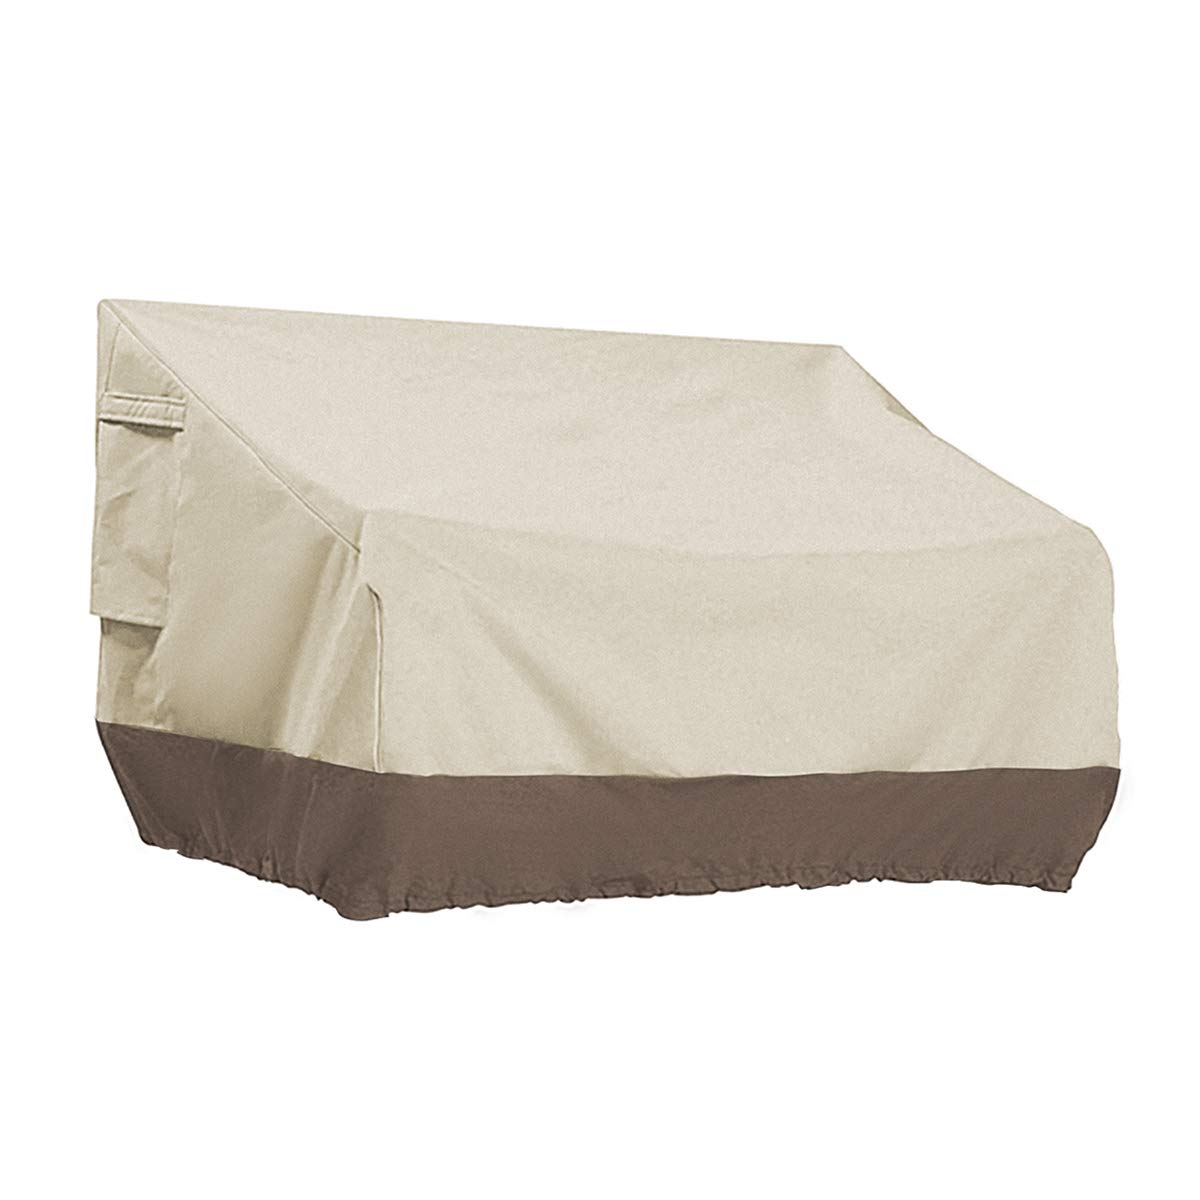 PHI VILLA Patio Bench Cover-Outdoor Loveseat Lounge Cover Water Proof and UV Resistant, Large